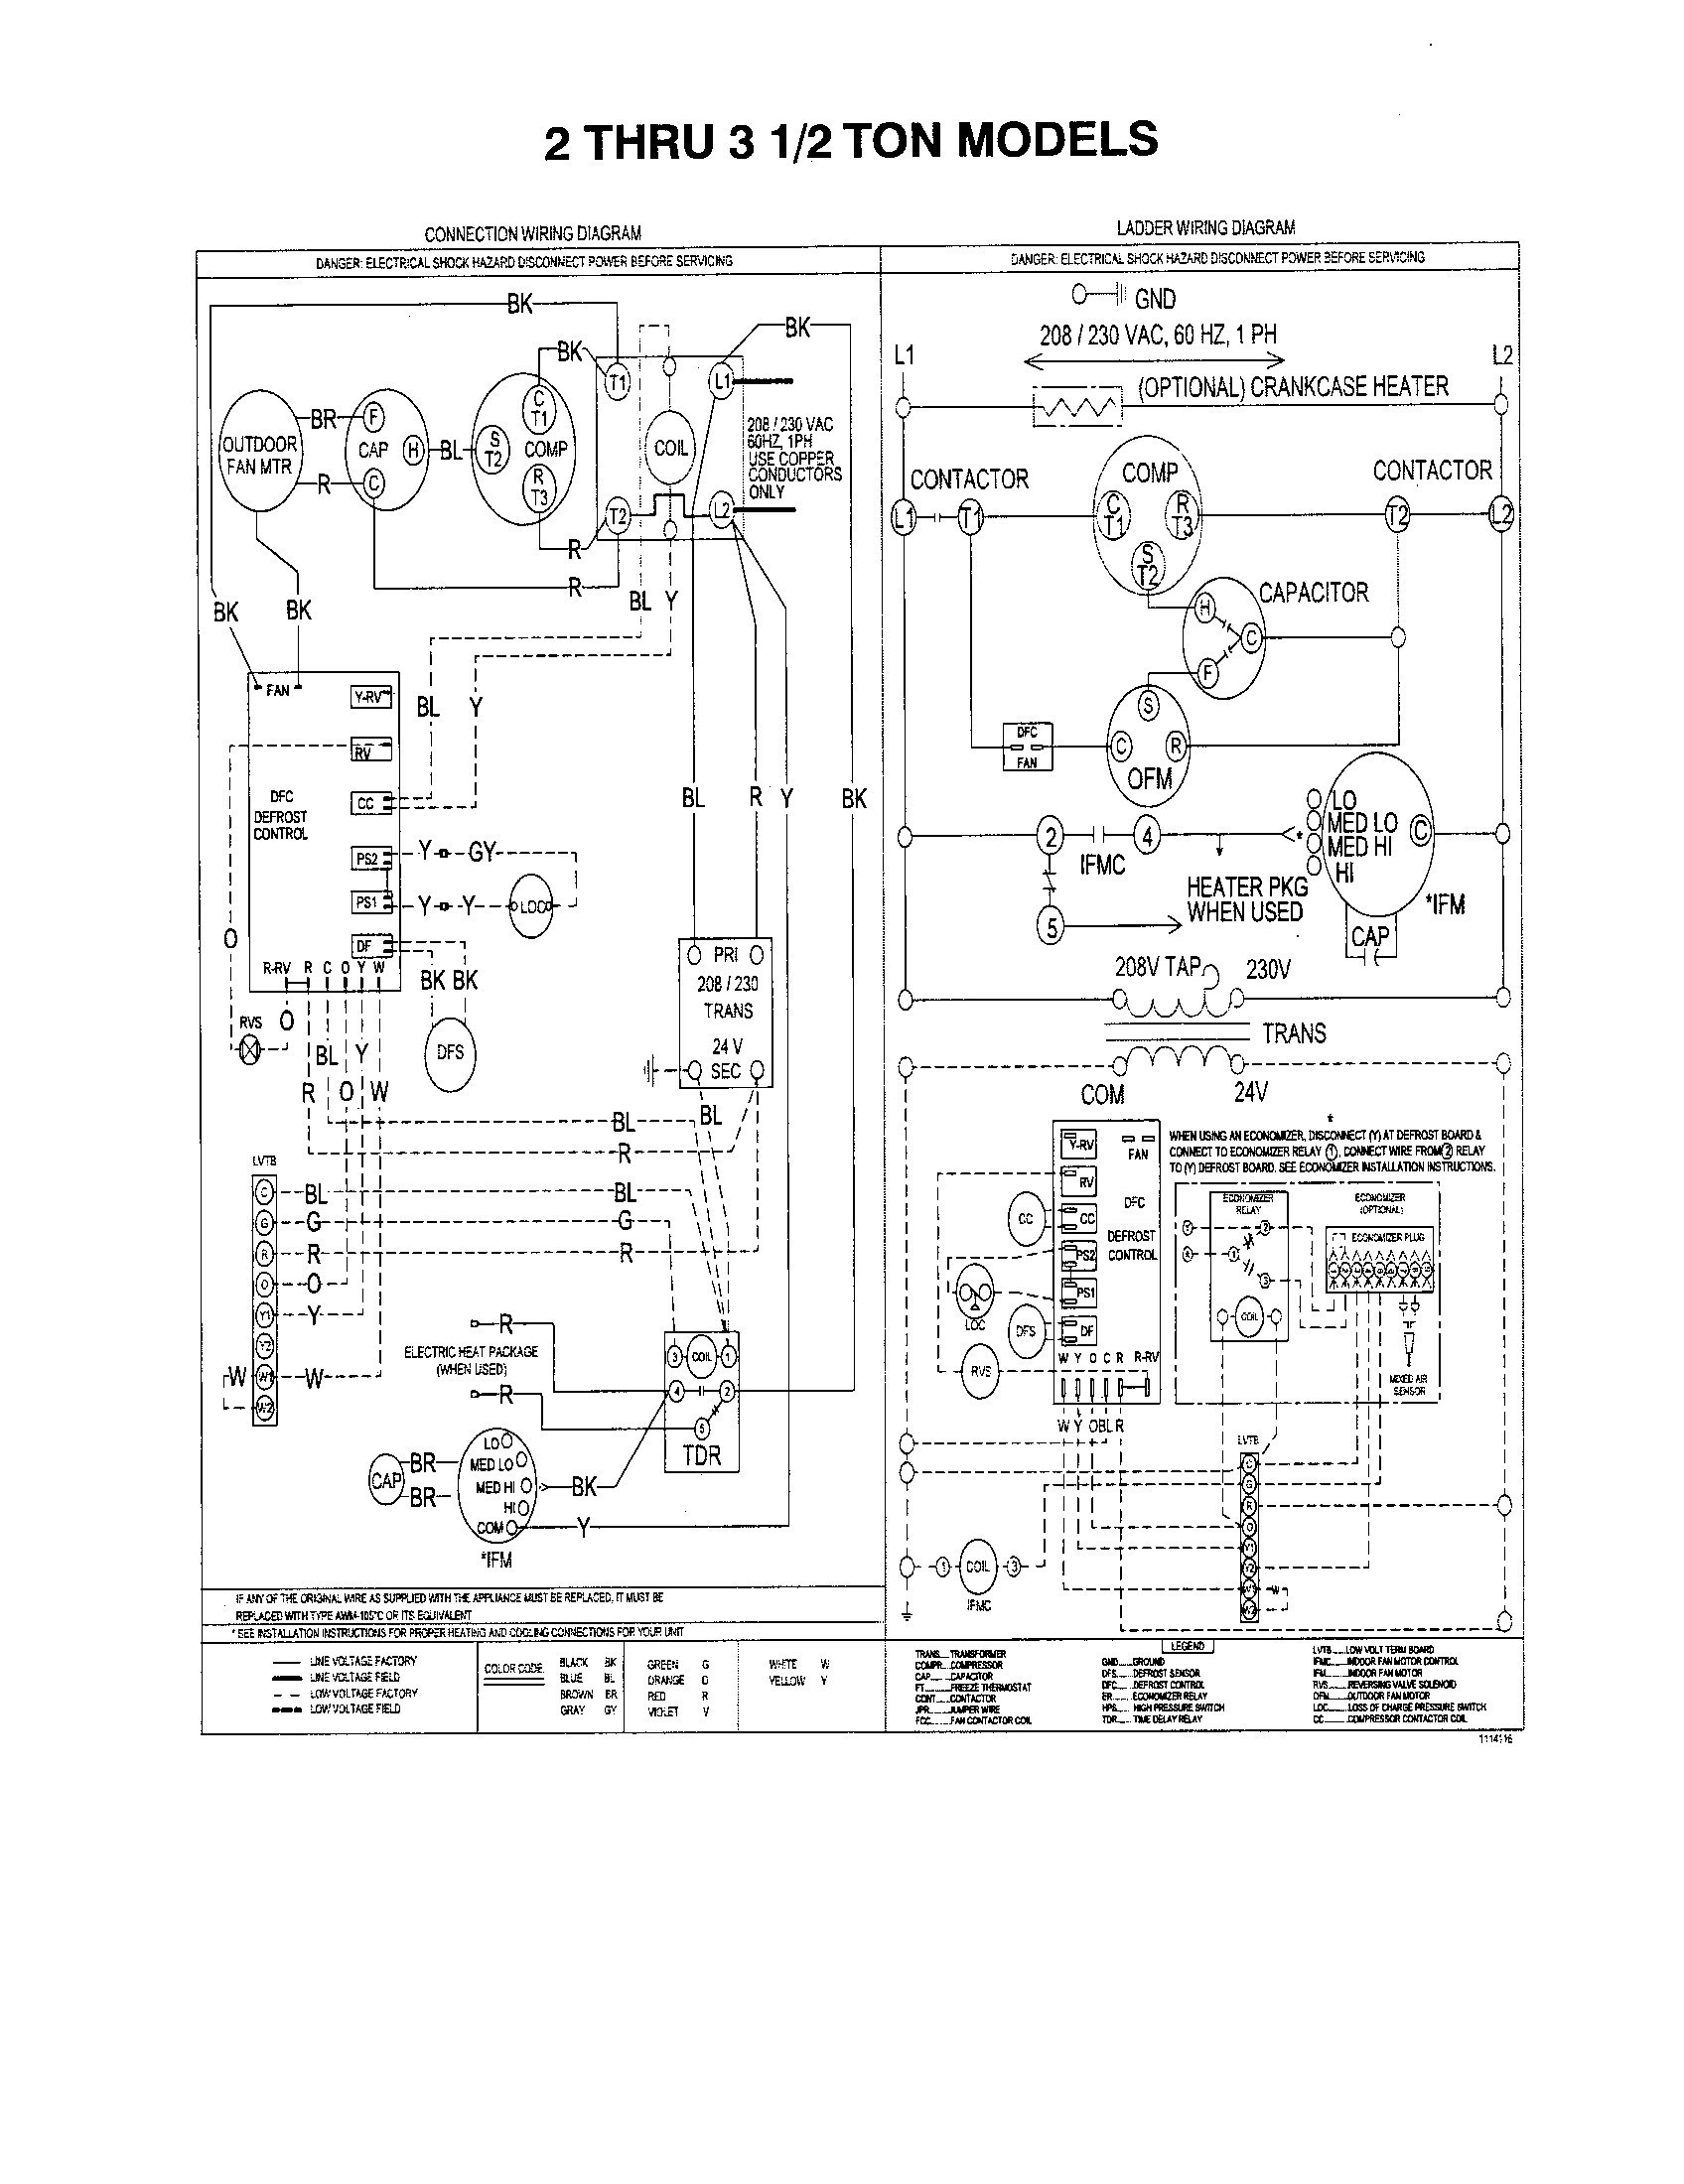 york d7cg wiring diagram - wiring diagram oil sending unit wiring diagram oil package unit wiring diagram #9